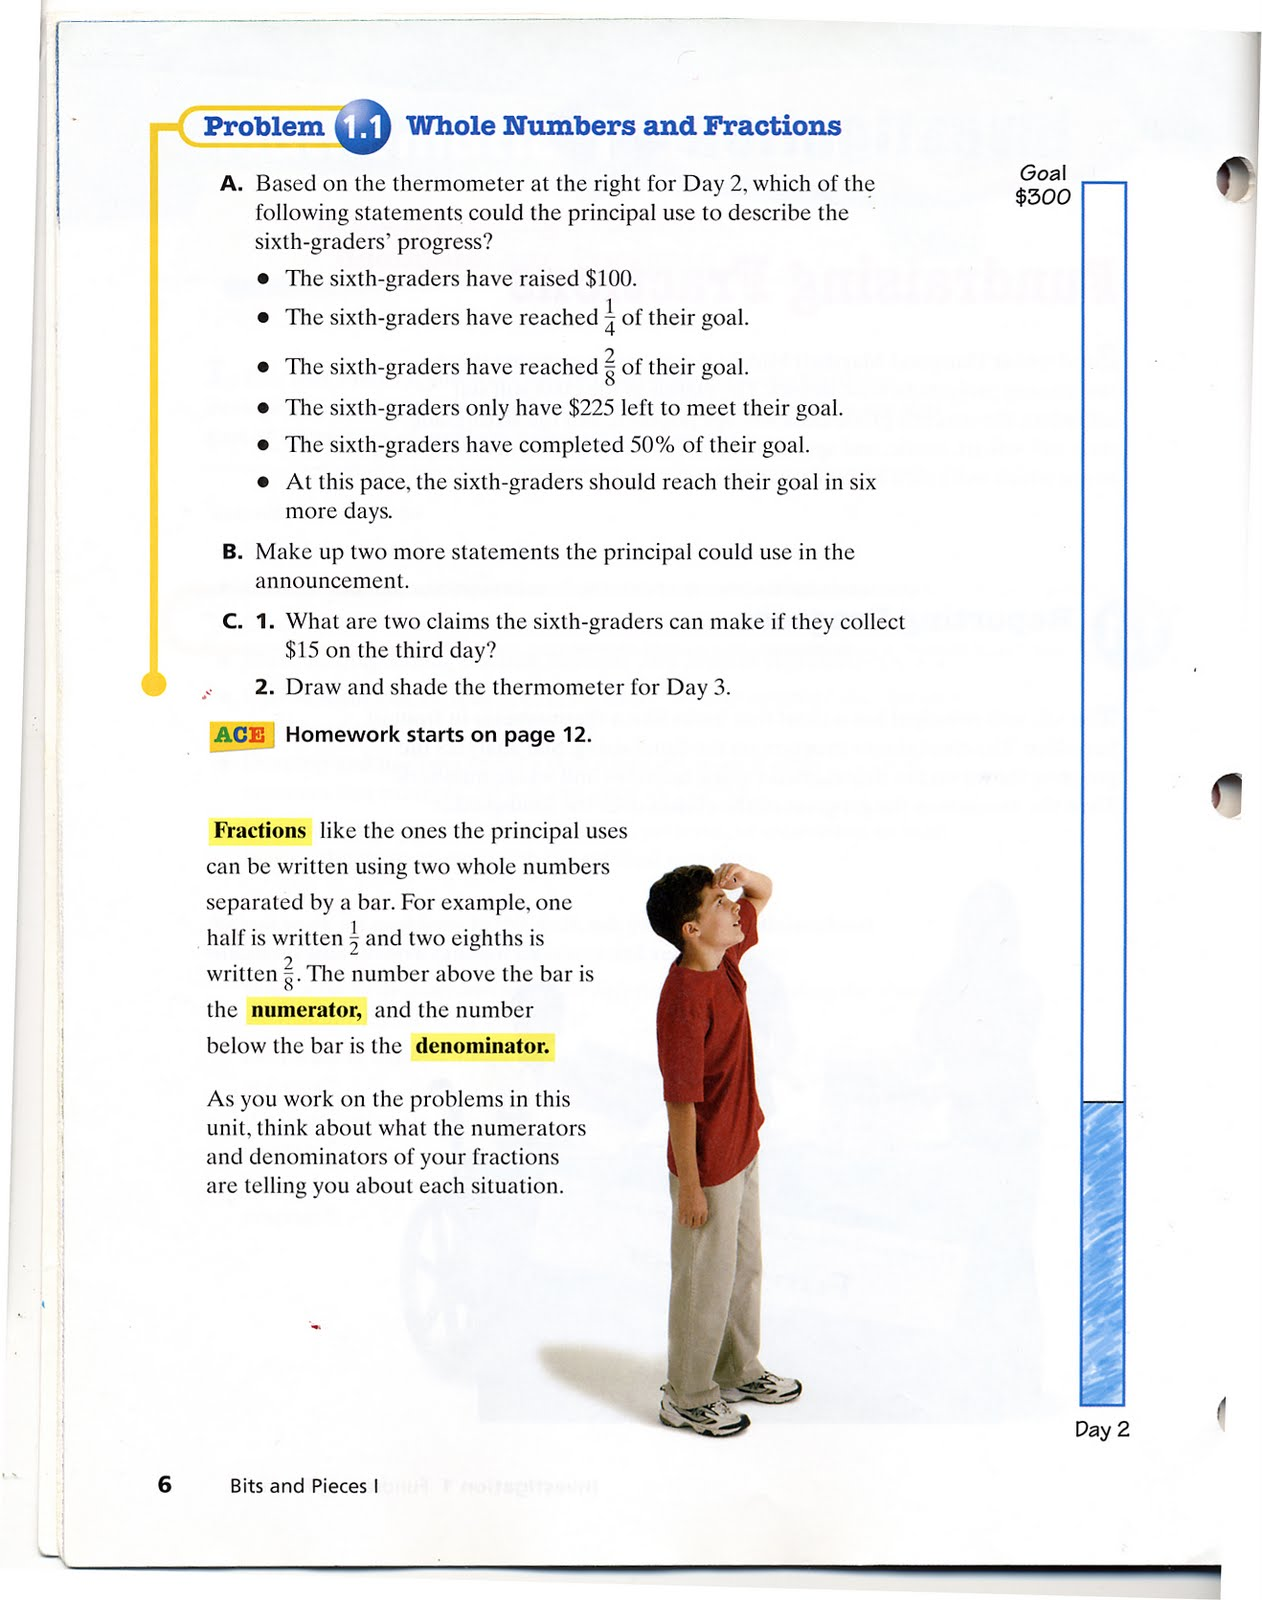 Buy An Essay Paper Buy University Essays Online Uk Pharmacy Is Psychology A Science Essay also Essay For English Language Better Business Creating Letter Memo More Persuasive Report Writing  Help With Essay Papers